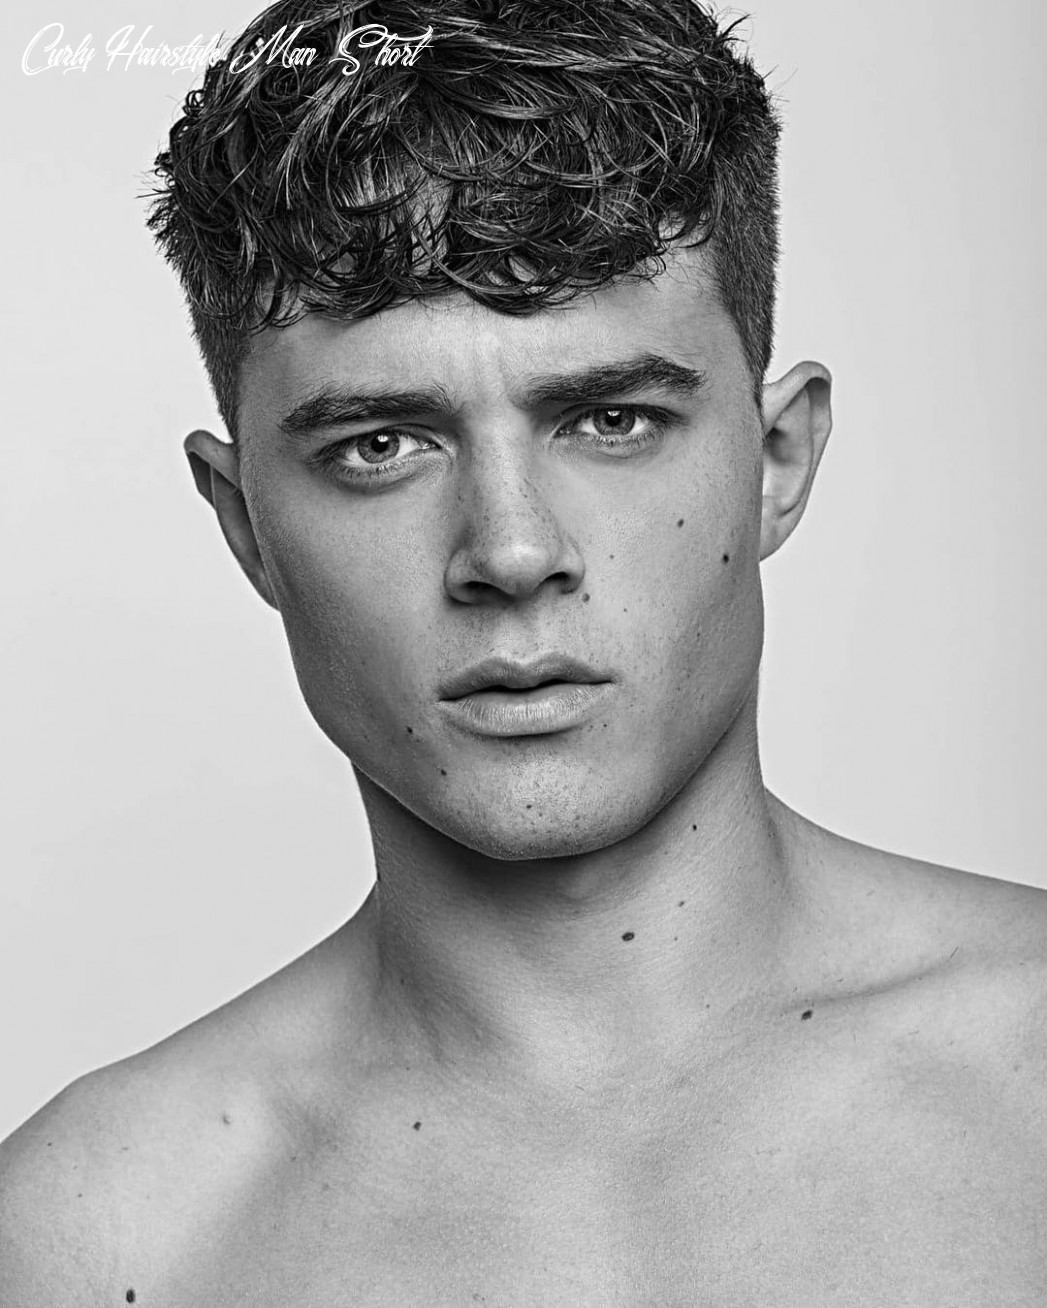 12 curly hair hairstyles for men (12 update) curly hairstyle man short